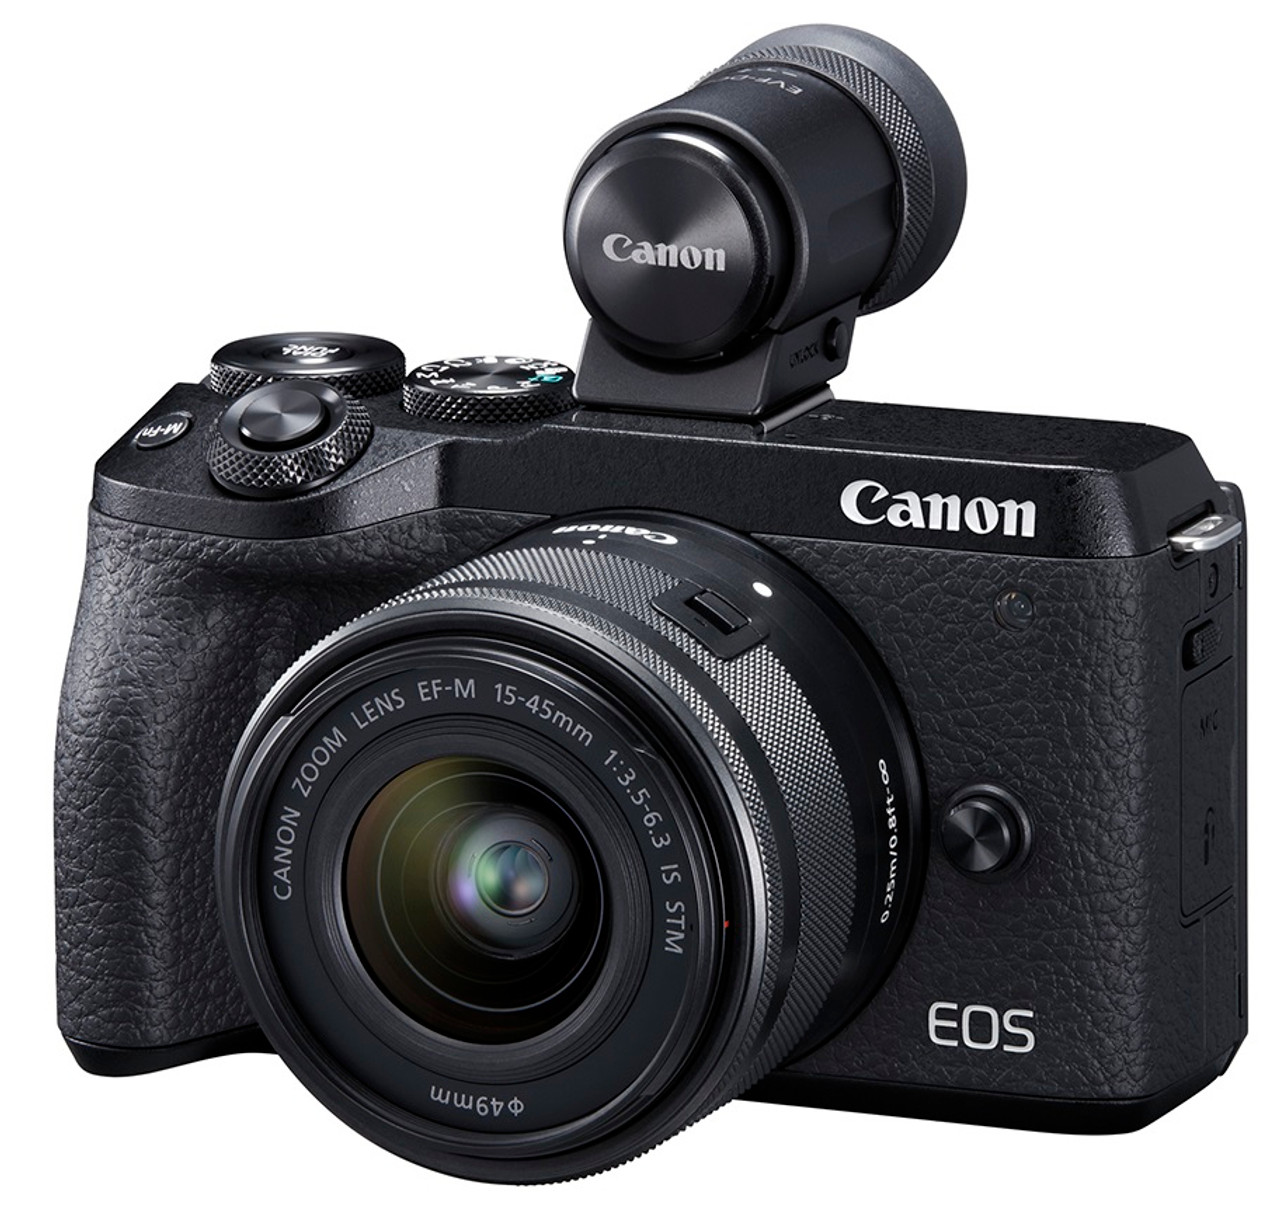 Canon EOS M6 Mark II Interchangeable Lens Camera with EF-M 15-45mm IS STM and EVF-DC2